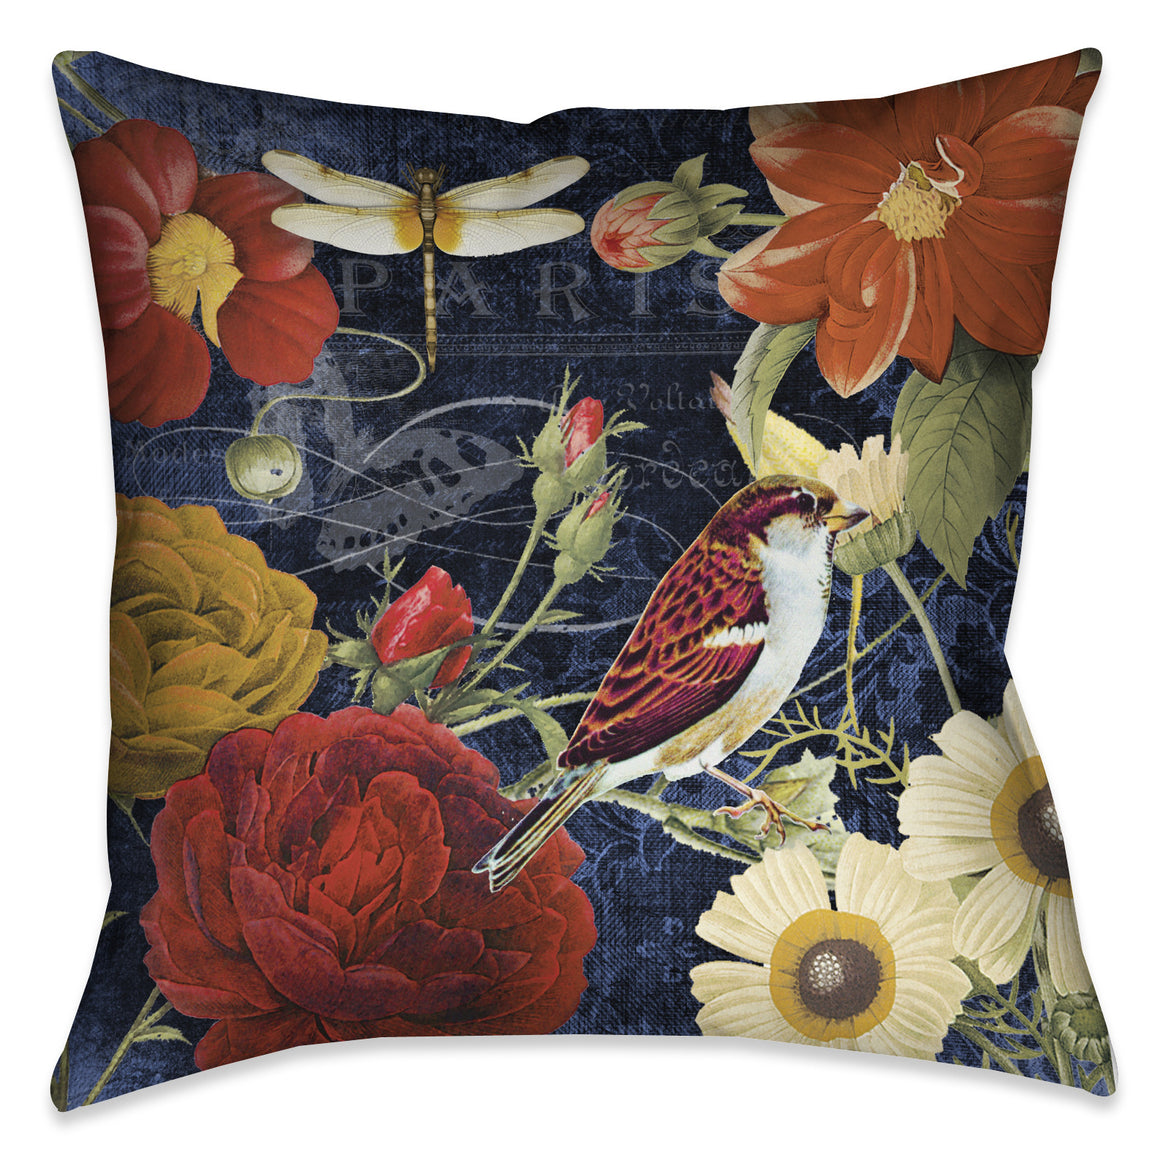 Vintage Floral Indoor Decorative Pillow